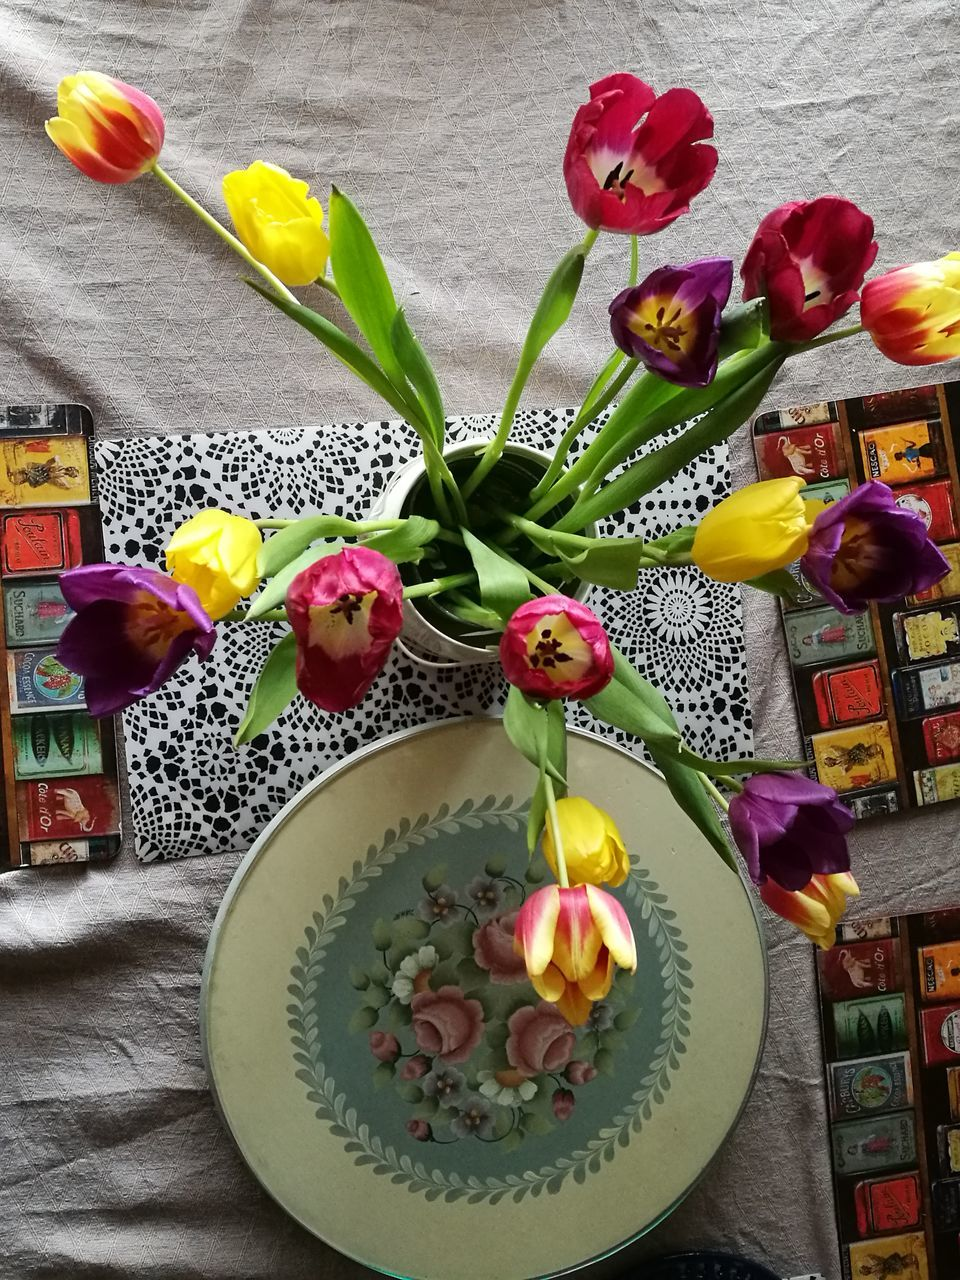 flower, indoors, freshness, vase, multi colored, celebration, tulip, candle, arrangement, petal, text, love, no people, home interior, fragility, birthday, ribbon, bouquet, birthday cake, gift, day, close-up, beauty in nature, food, flower head, nature